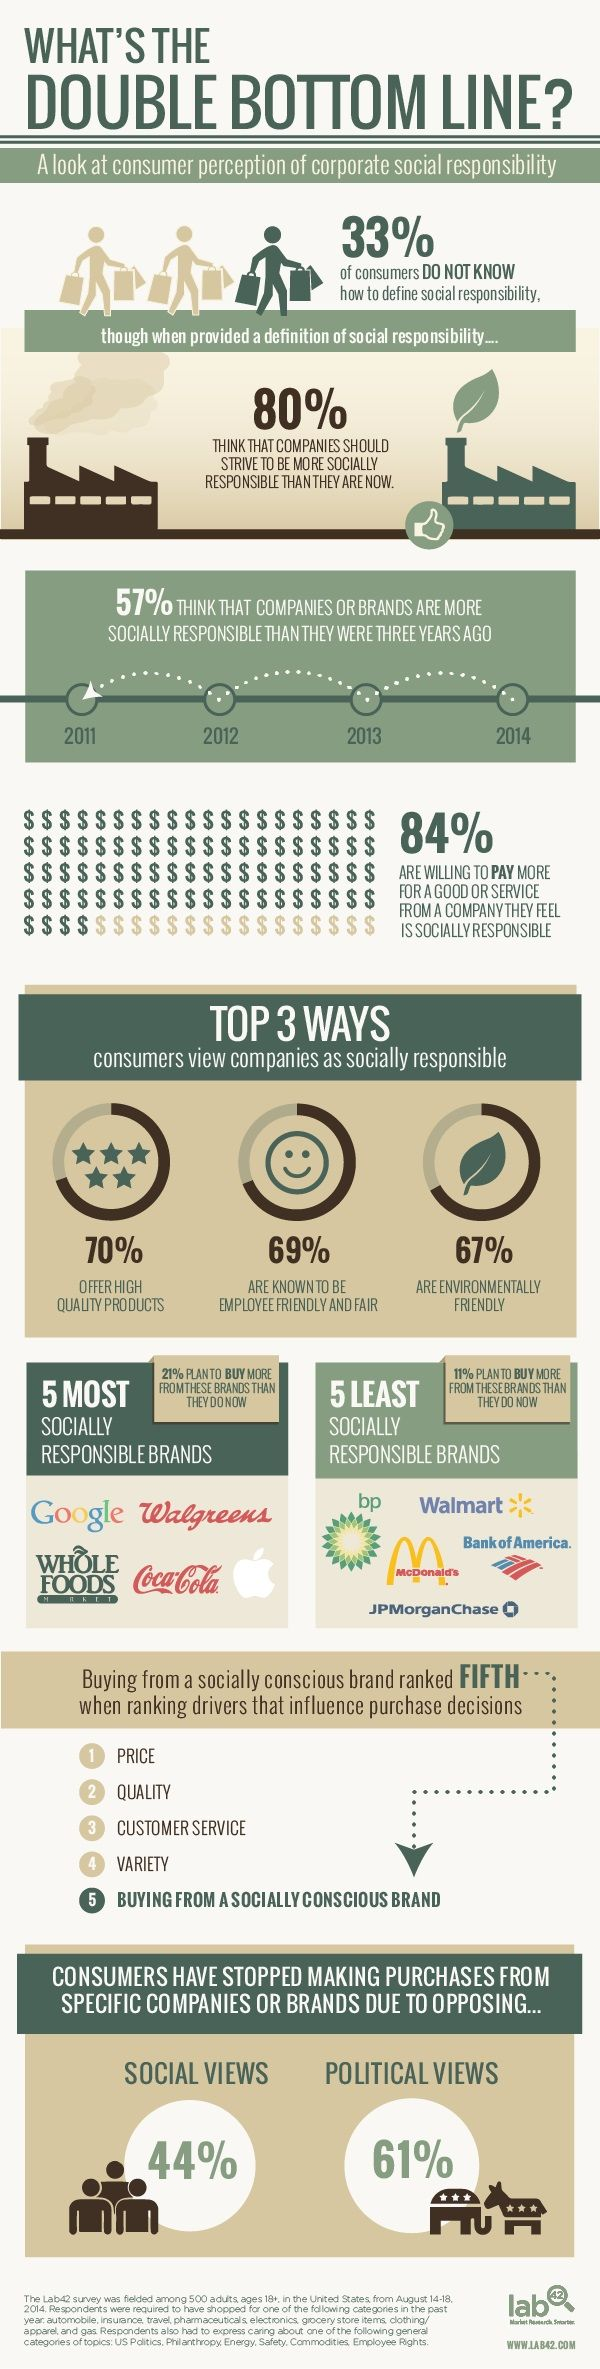 Brand Management - How Do Consumers Perceive Corporate Social Responsibility? [Infographic] : MarketingProfs Article